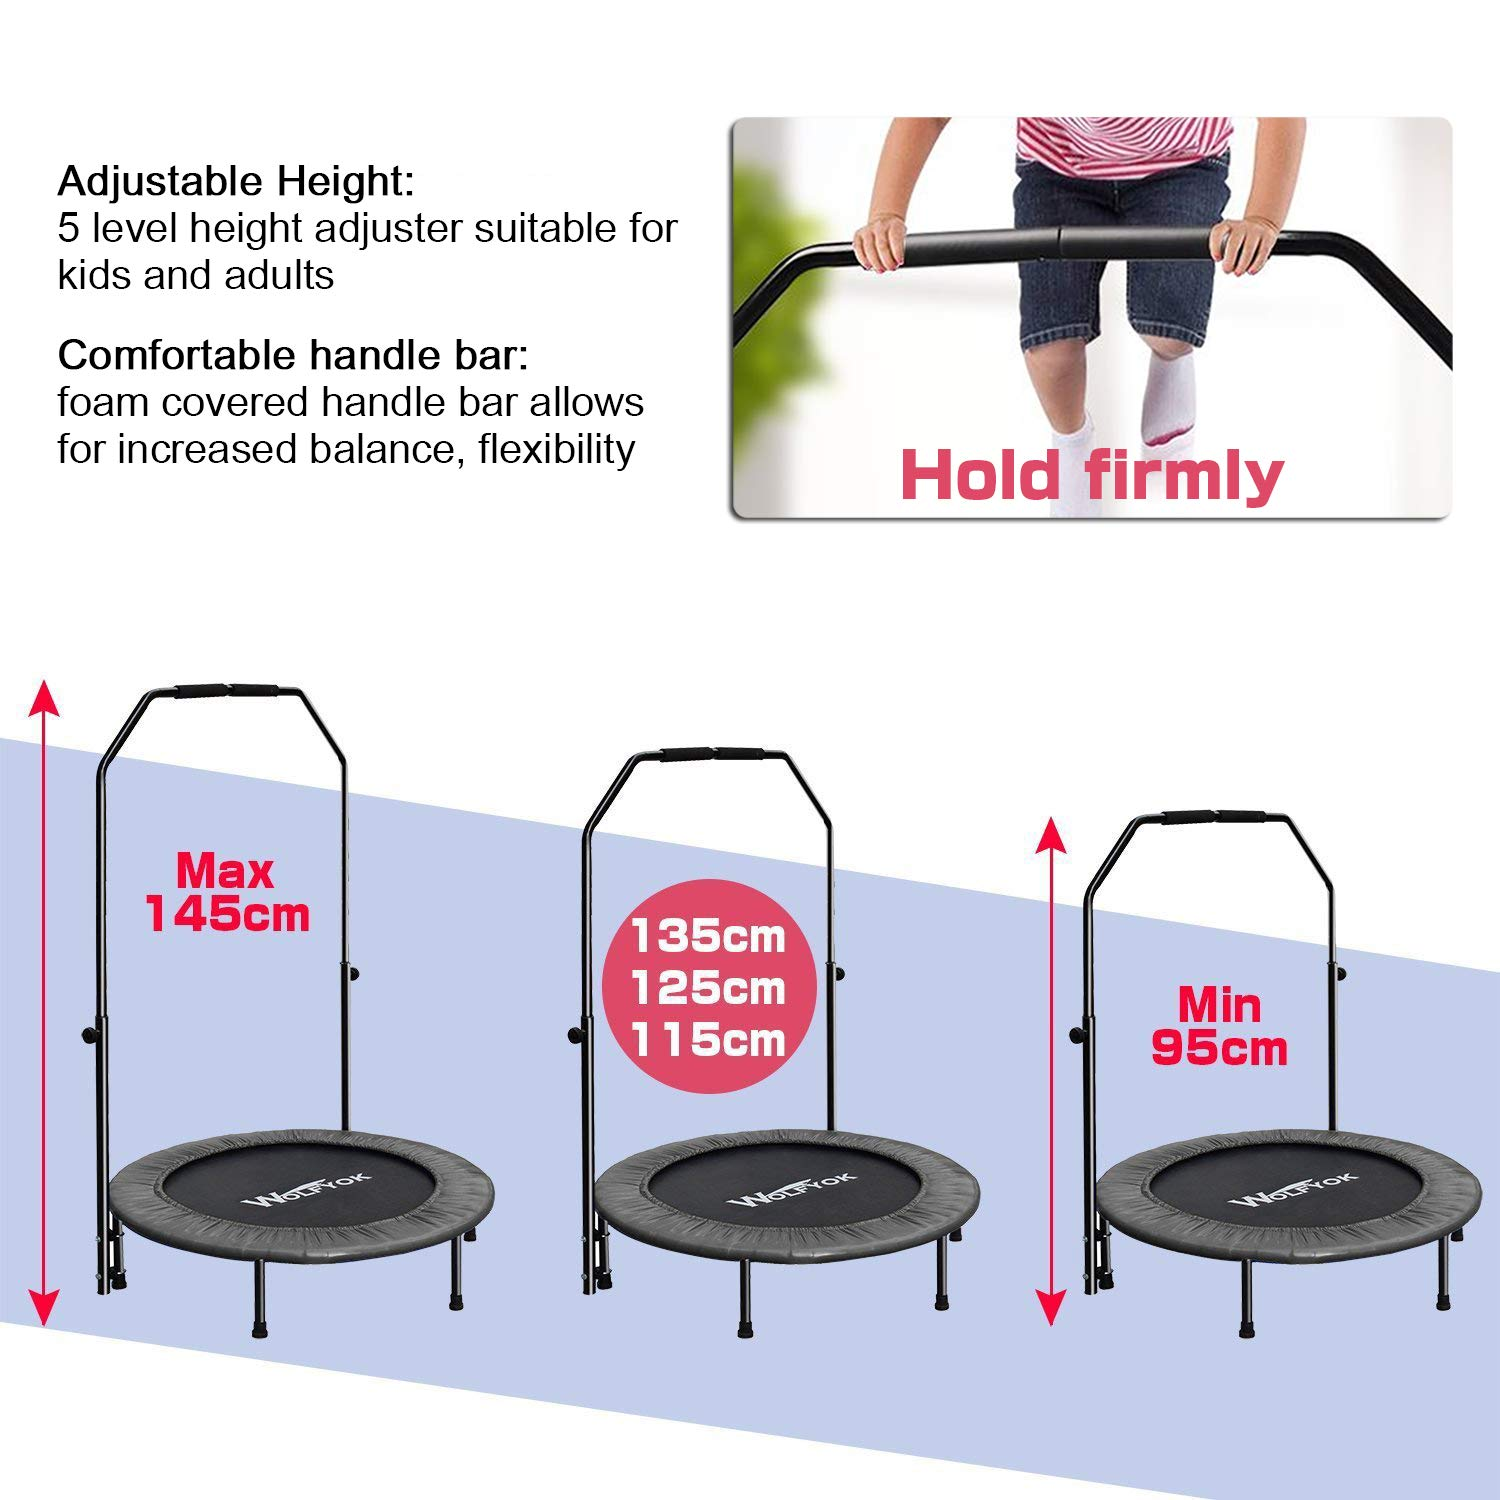 Wolfyok Exercise Trampoline with Safety Pad Adjustable Handle Bar Portable & Foldable Rebounder for Adults Kids Body Fitness Training Workout Max Load 220 lbs Black by Wolfyok (Image #6)